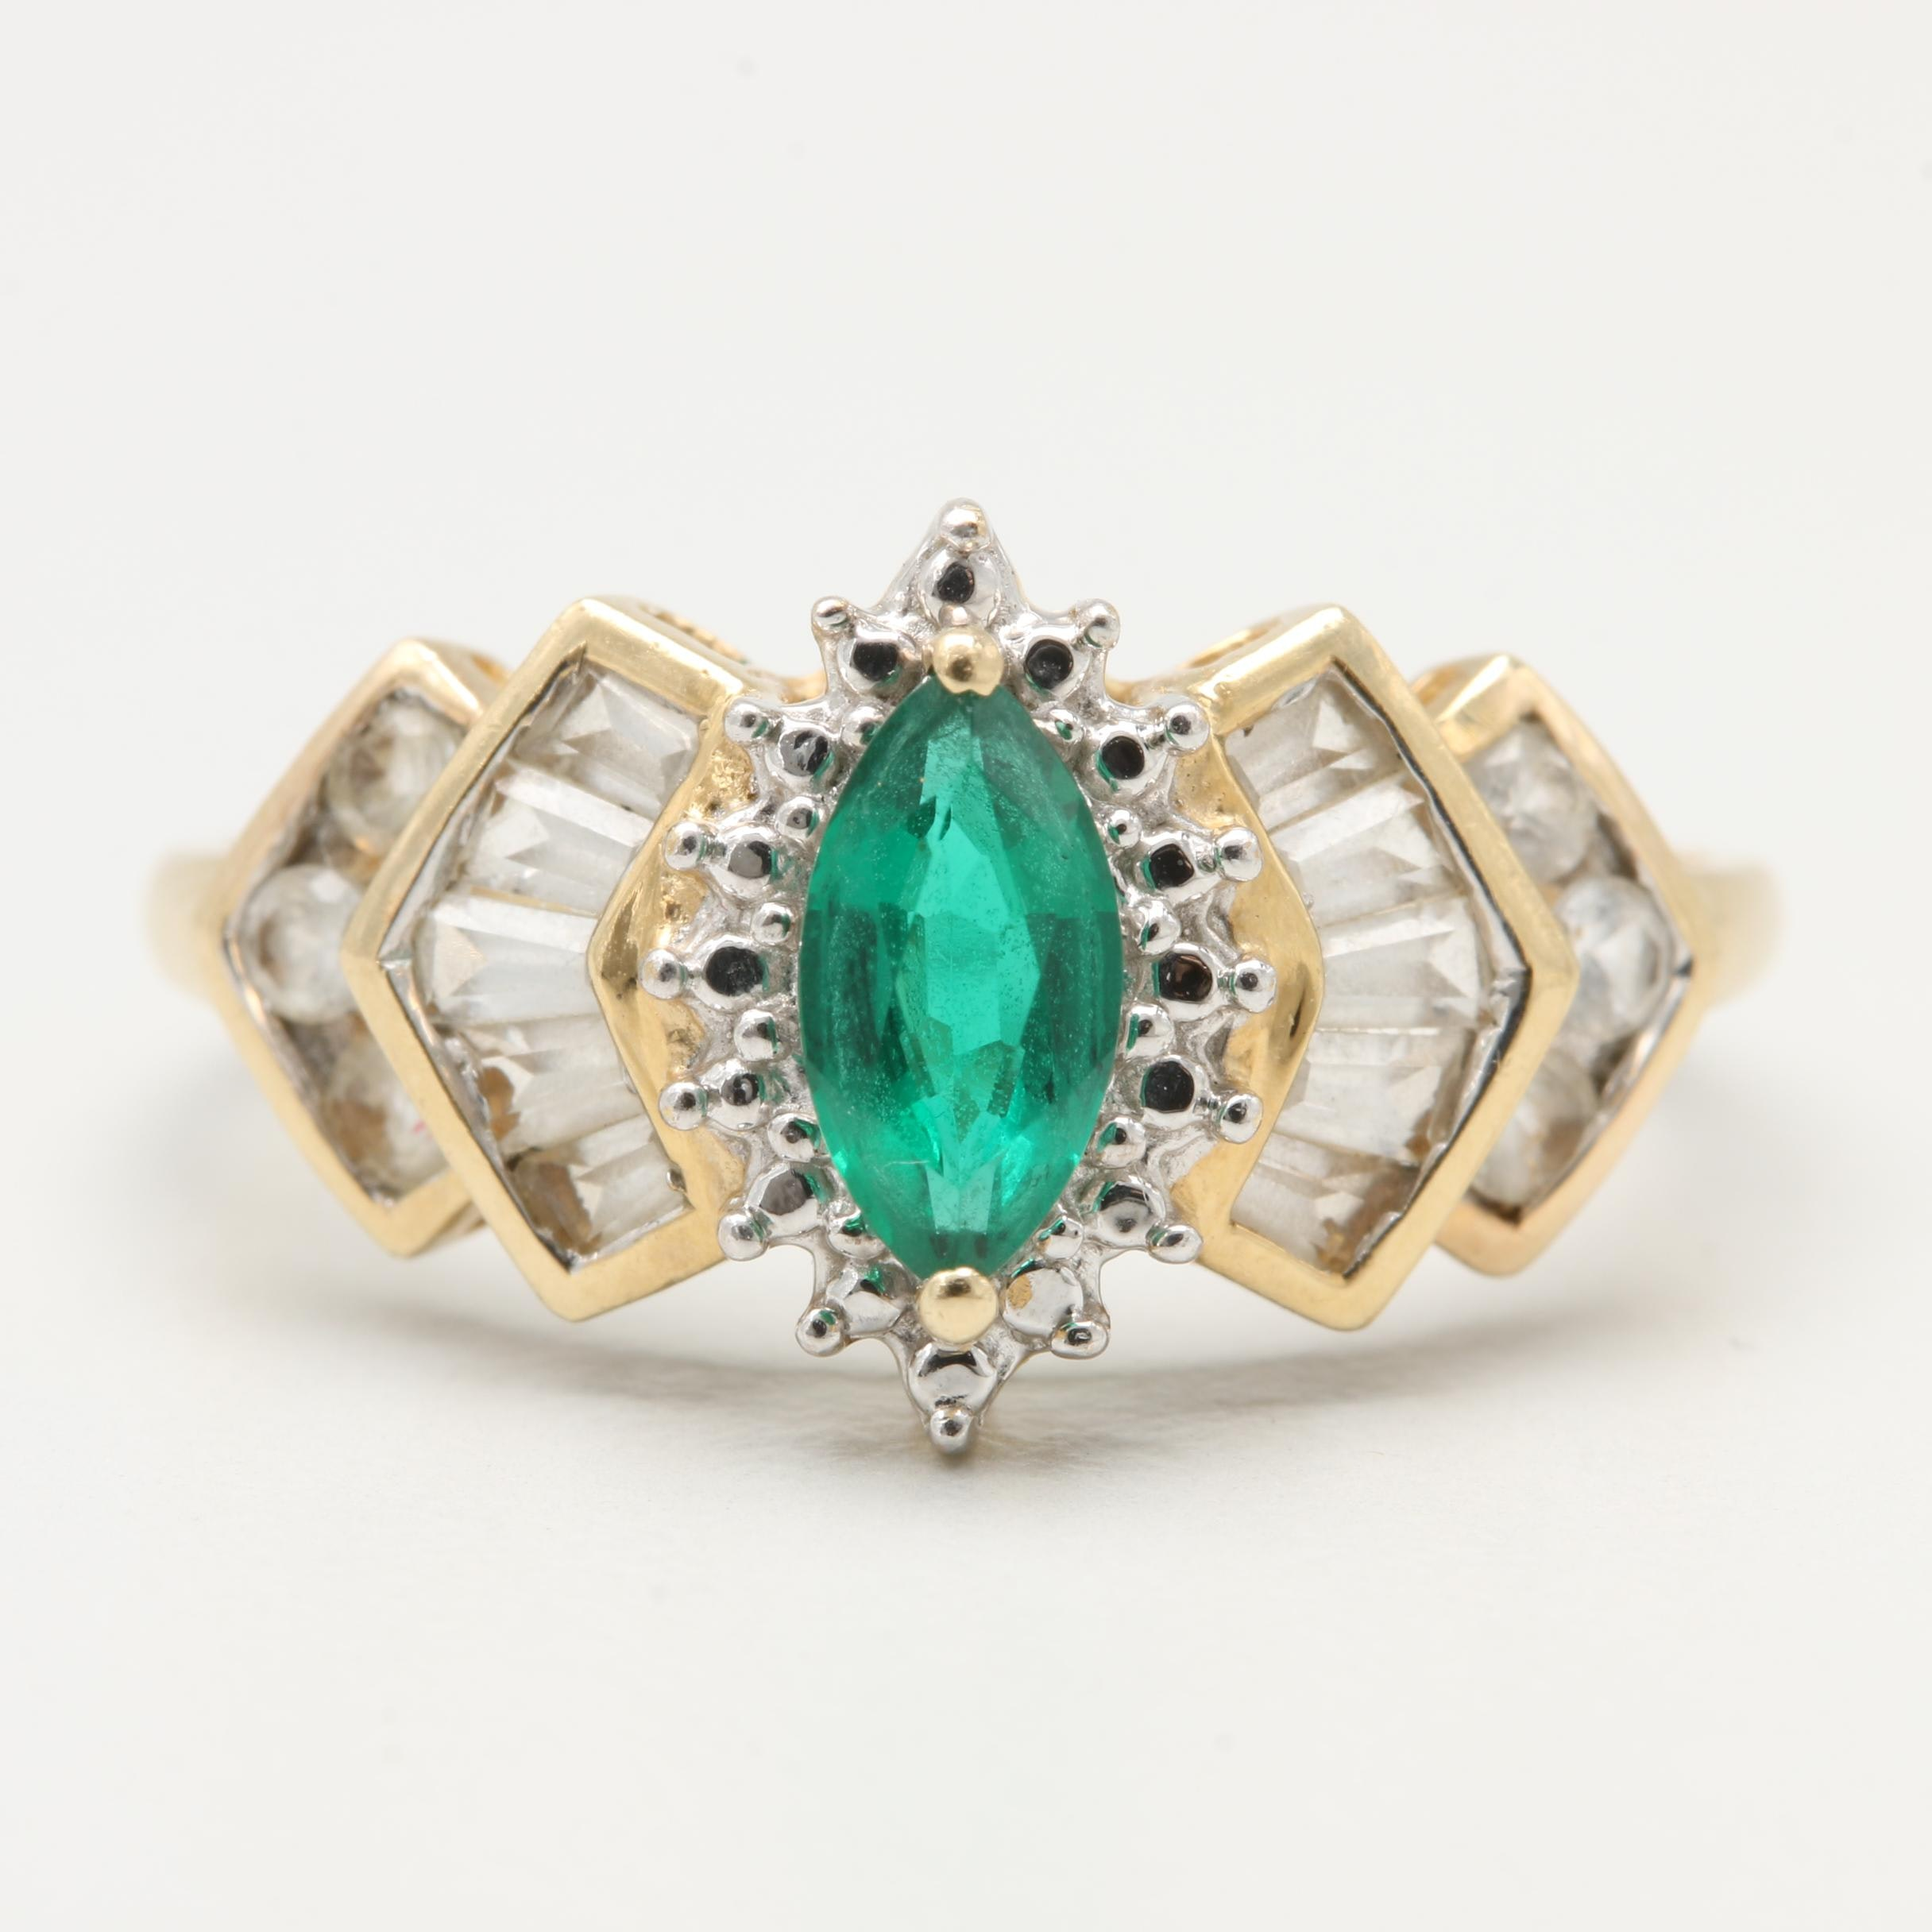 10K Yellow Gold Synthetic Emerald and Synthetic White Sapphire Ring